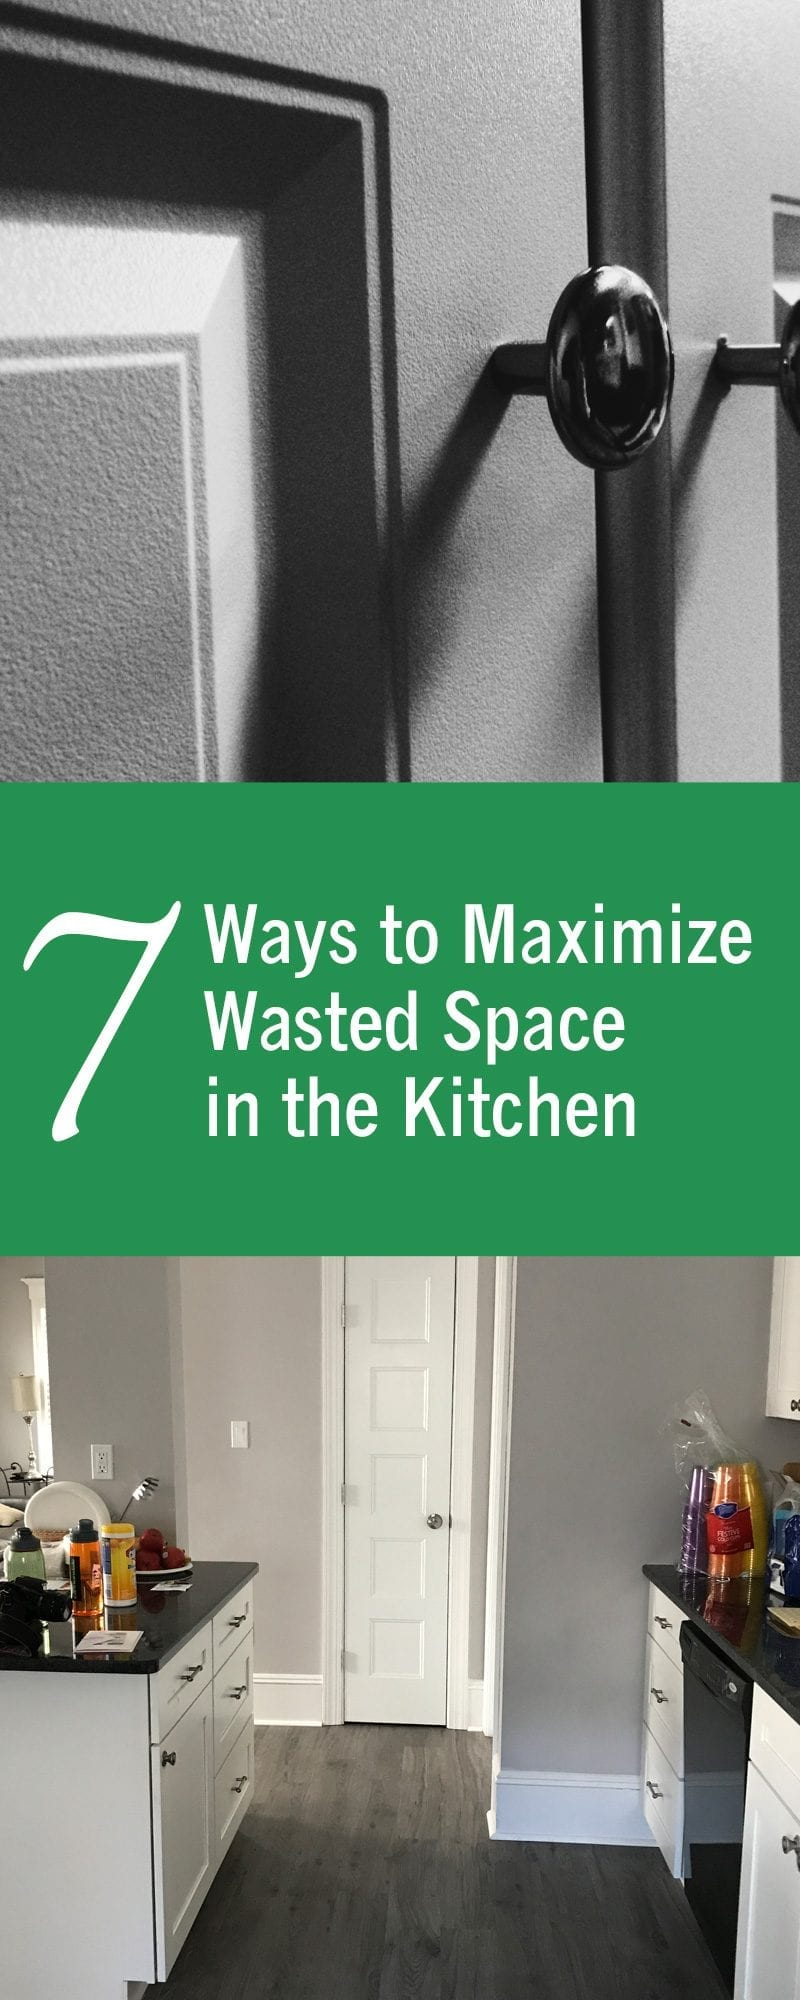 7 Ways to Maximize Wasted Space in Kitchen